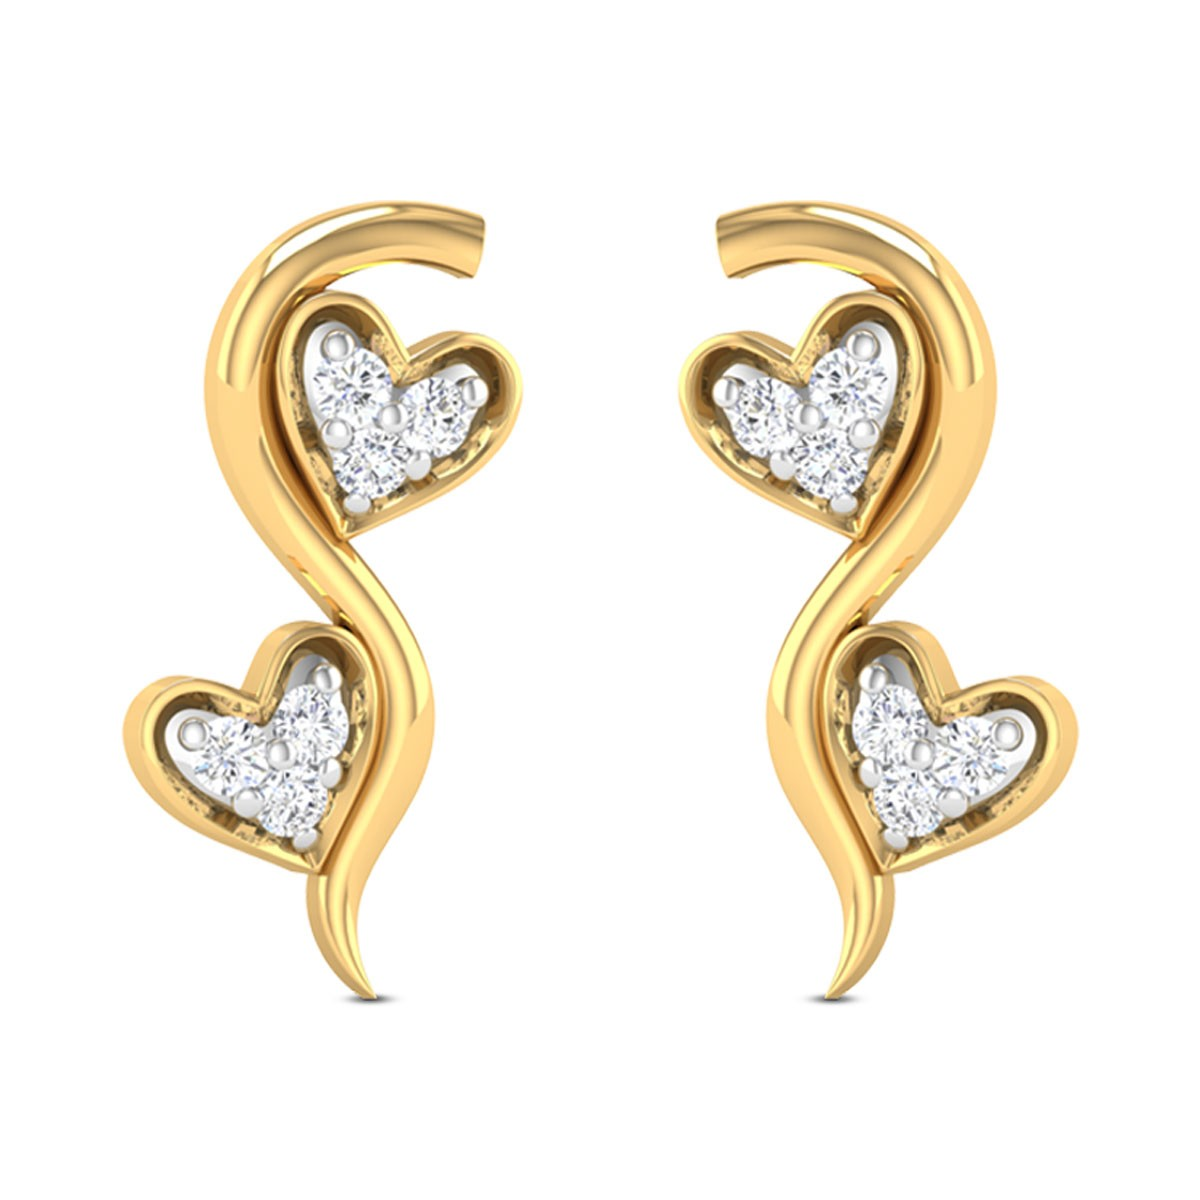 Cuba Diamond Earrings